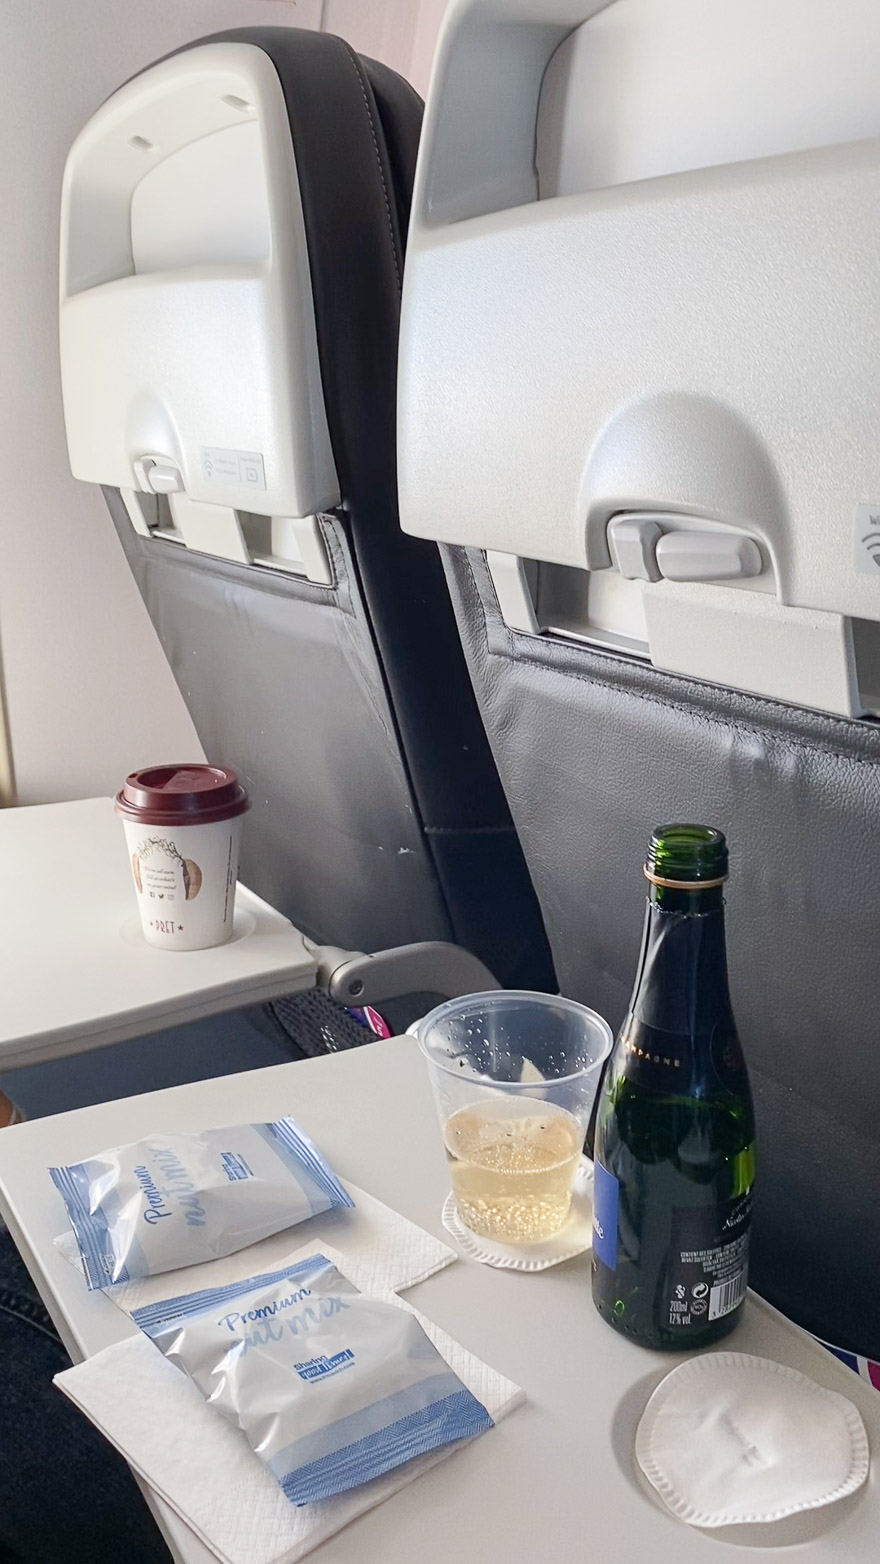 covid Club Europe A321 10 - REVIEW - British Airways : Club Europe Business Class - A319 - London (LHR) to Rome (FCO) - [COVID-era]